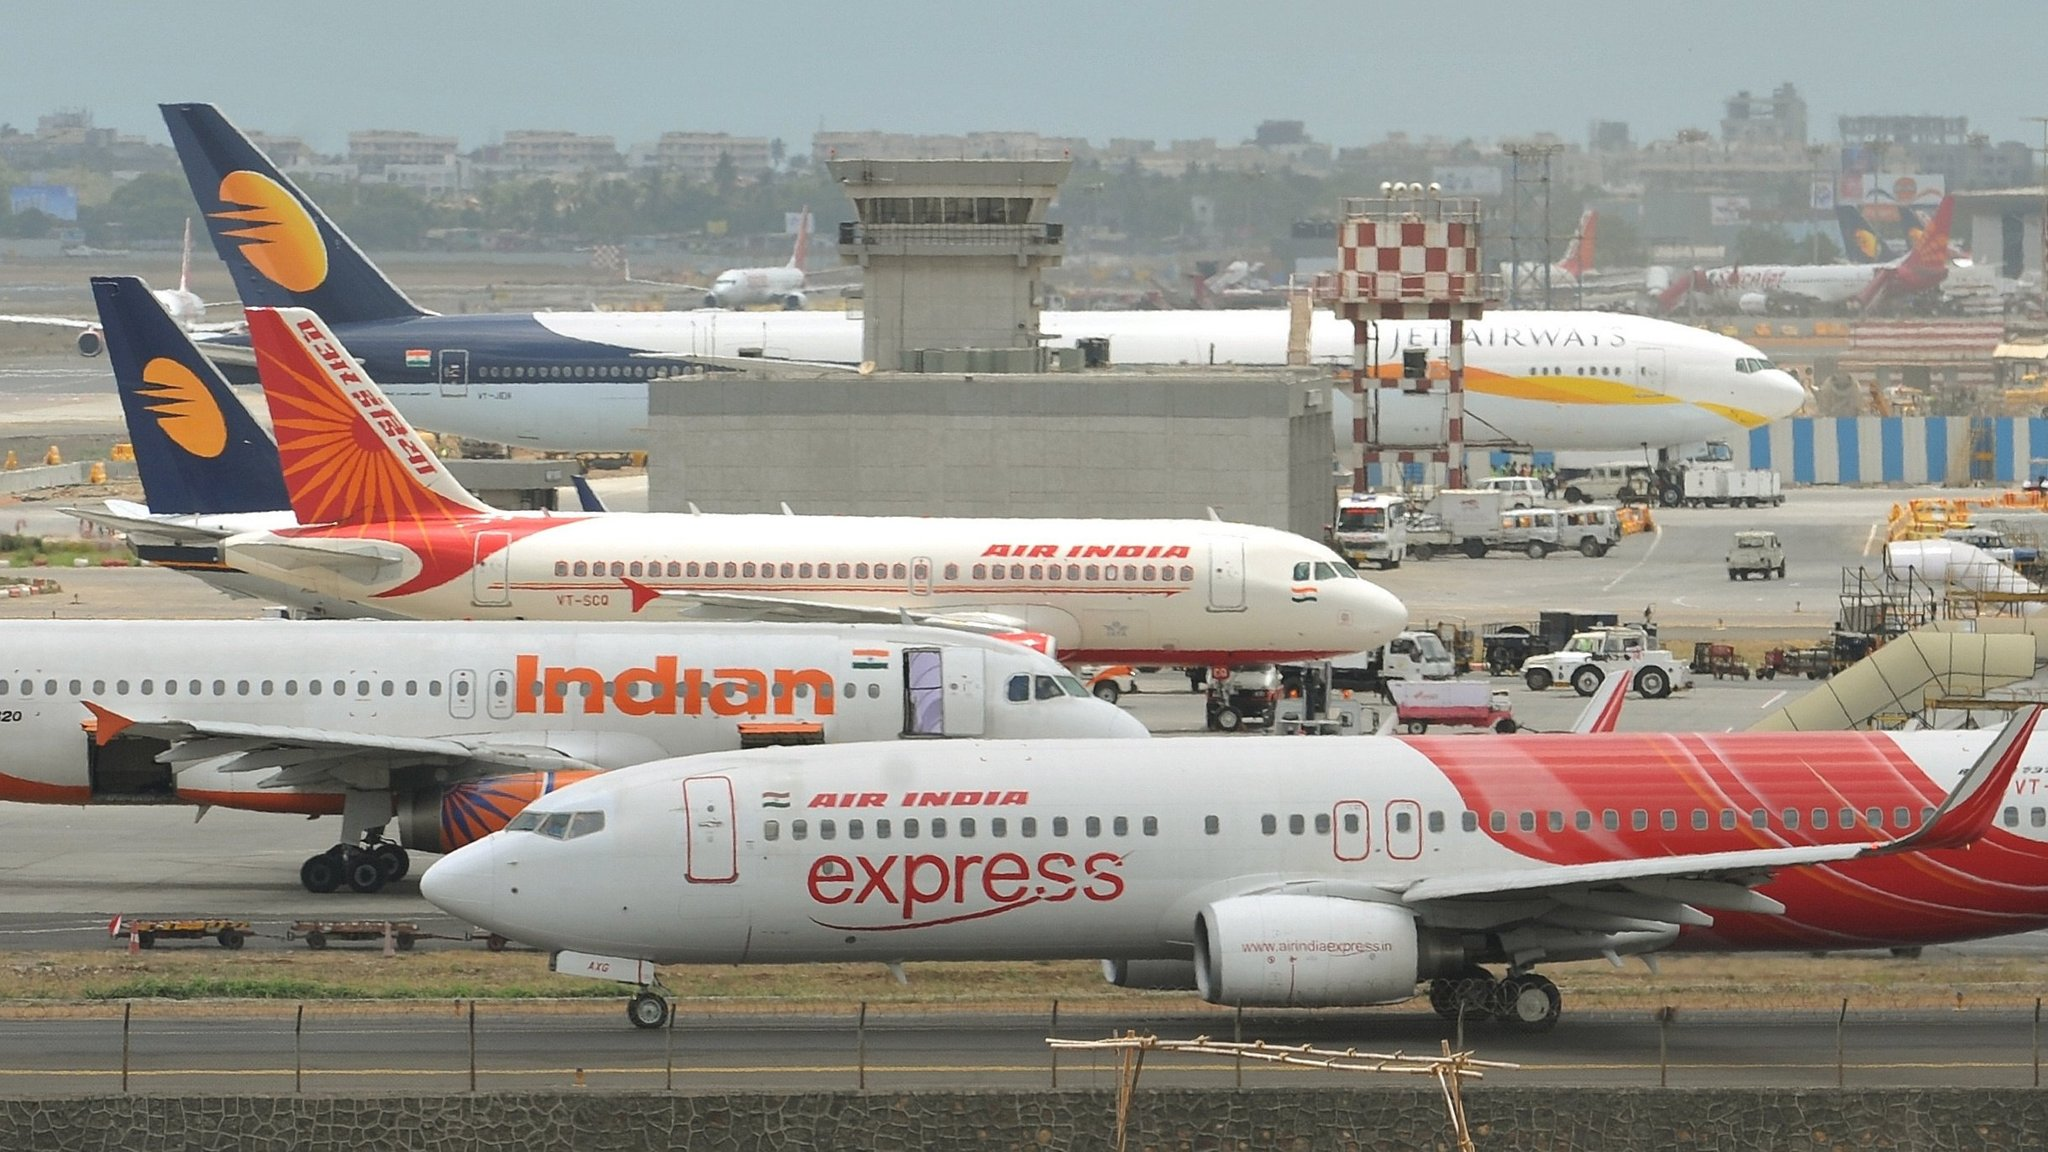 india set to overtake us aviation market, says minister   financial times